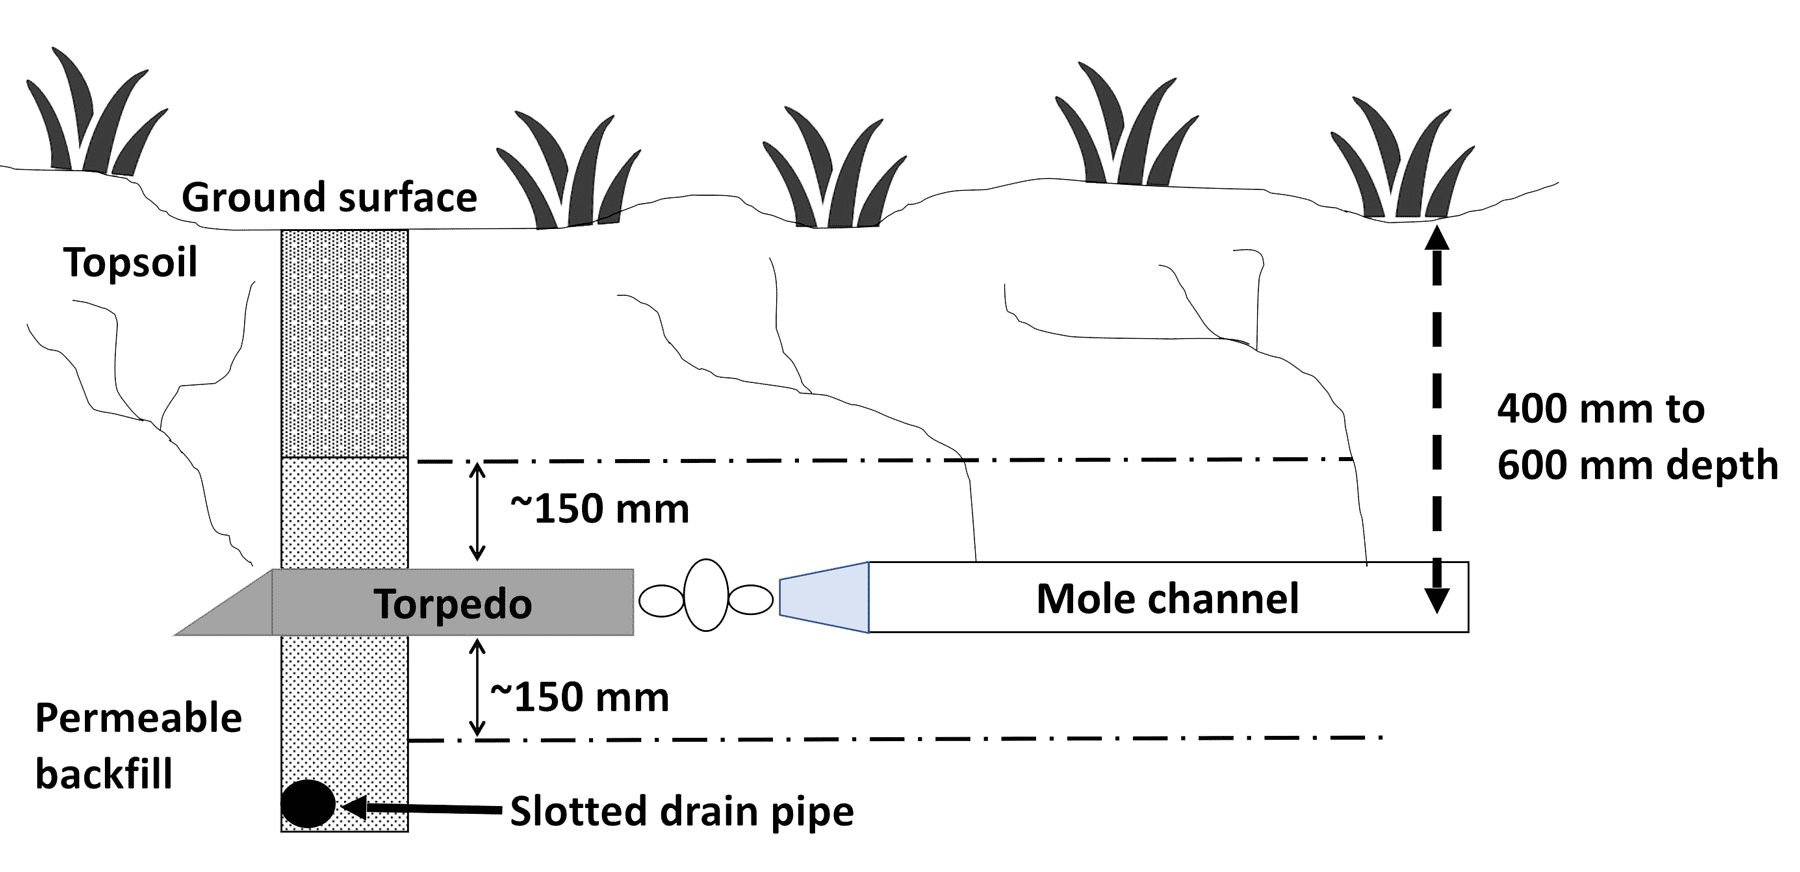 Mole plough demonstrating how a mole channel is created, in this case with a slotted drain pipe underneath. The mole channel should be between 400 mm to 600 mm below the ground surface.